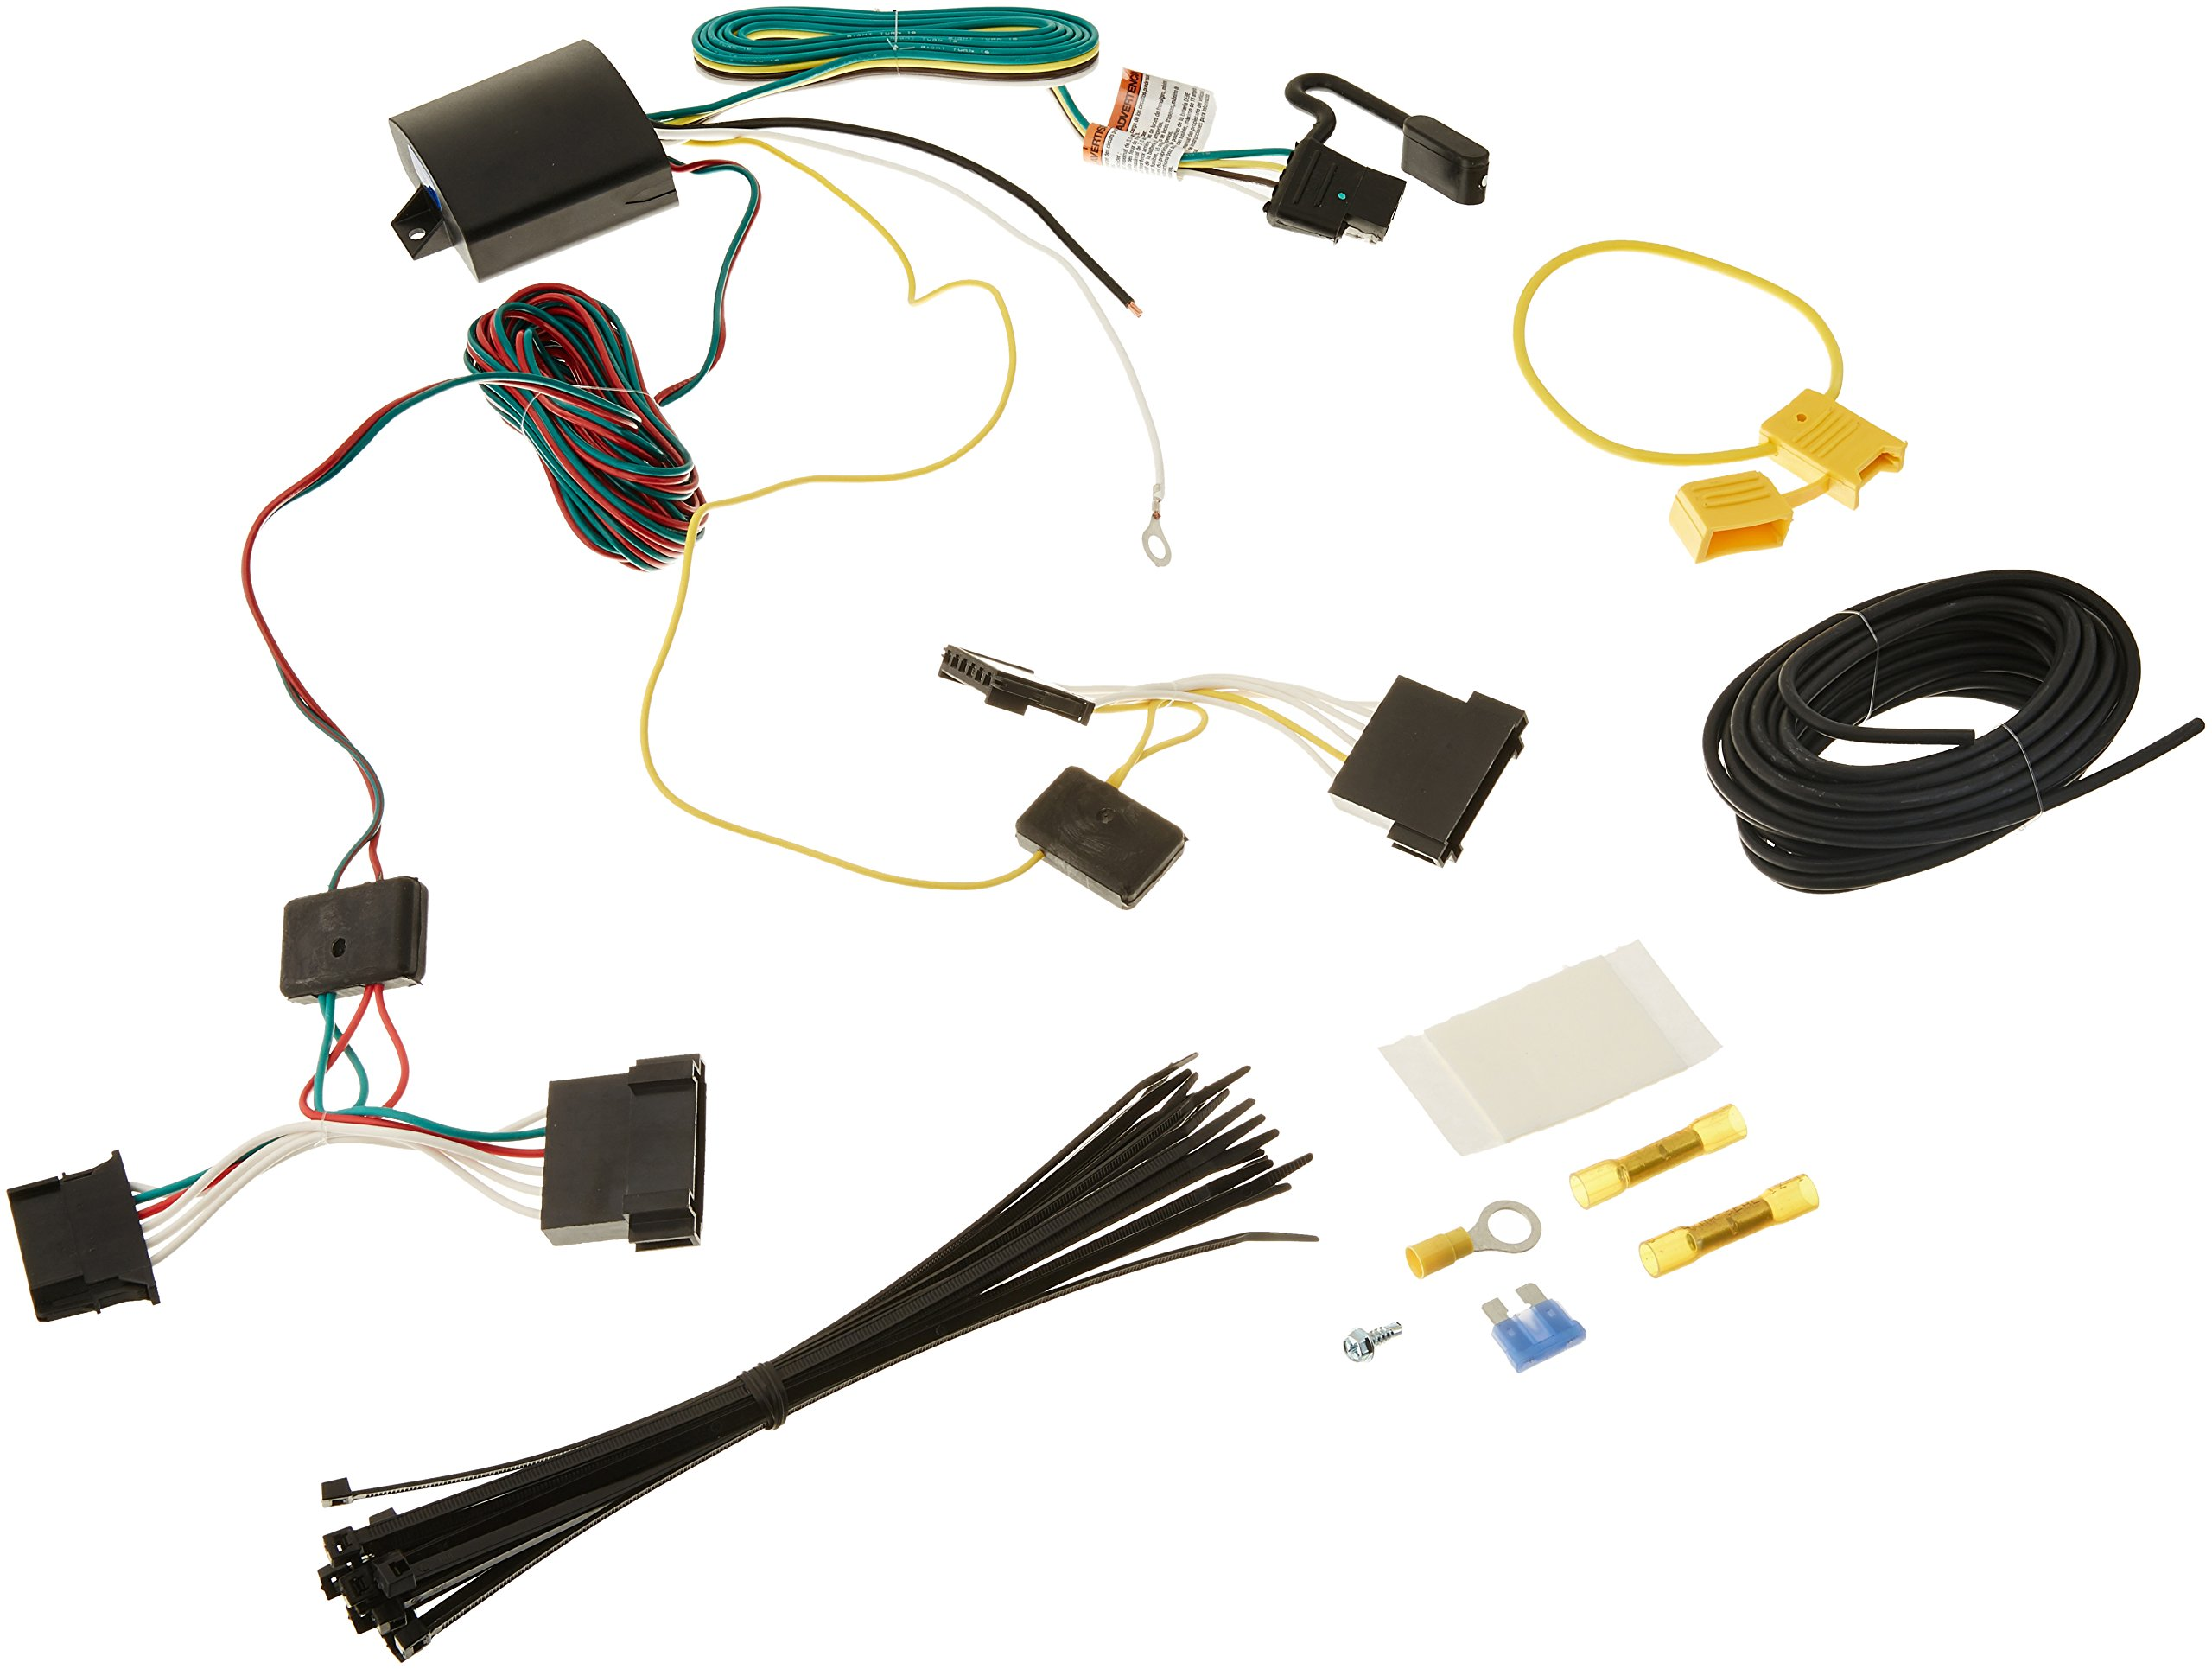 Tekonsha 118649 T-One Connector Assembly w/Upgraded Circuit Protected ModuLite HD Module by Tekonsha